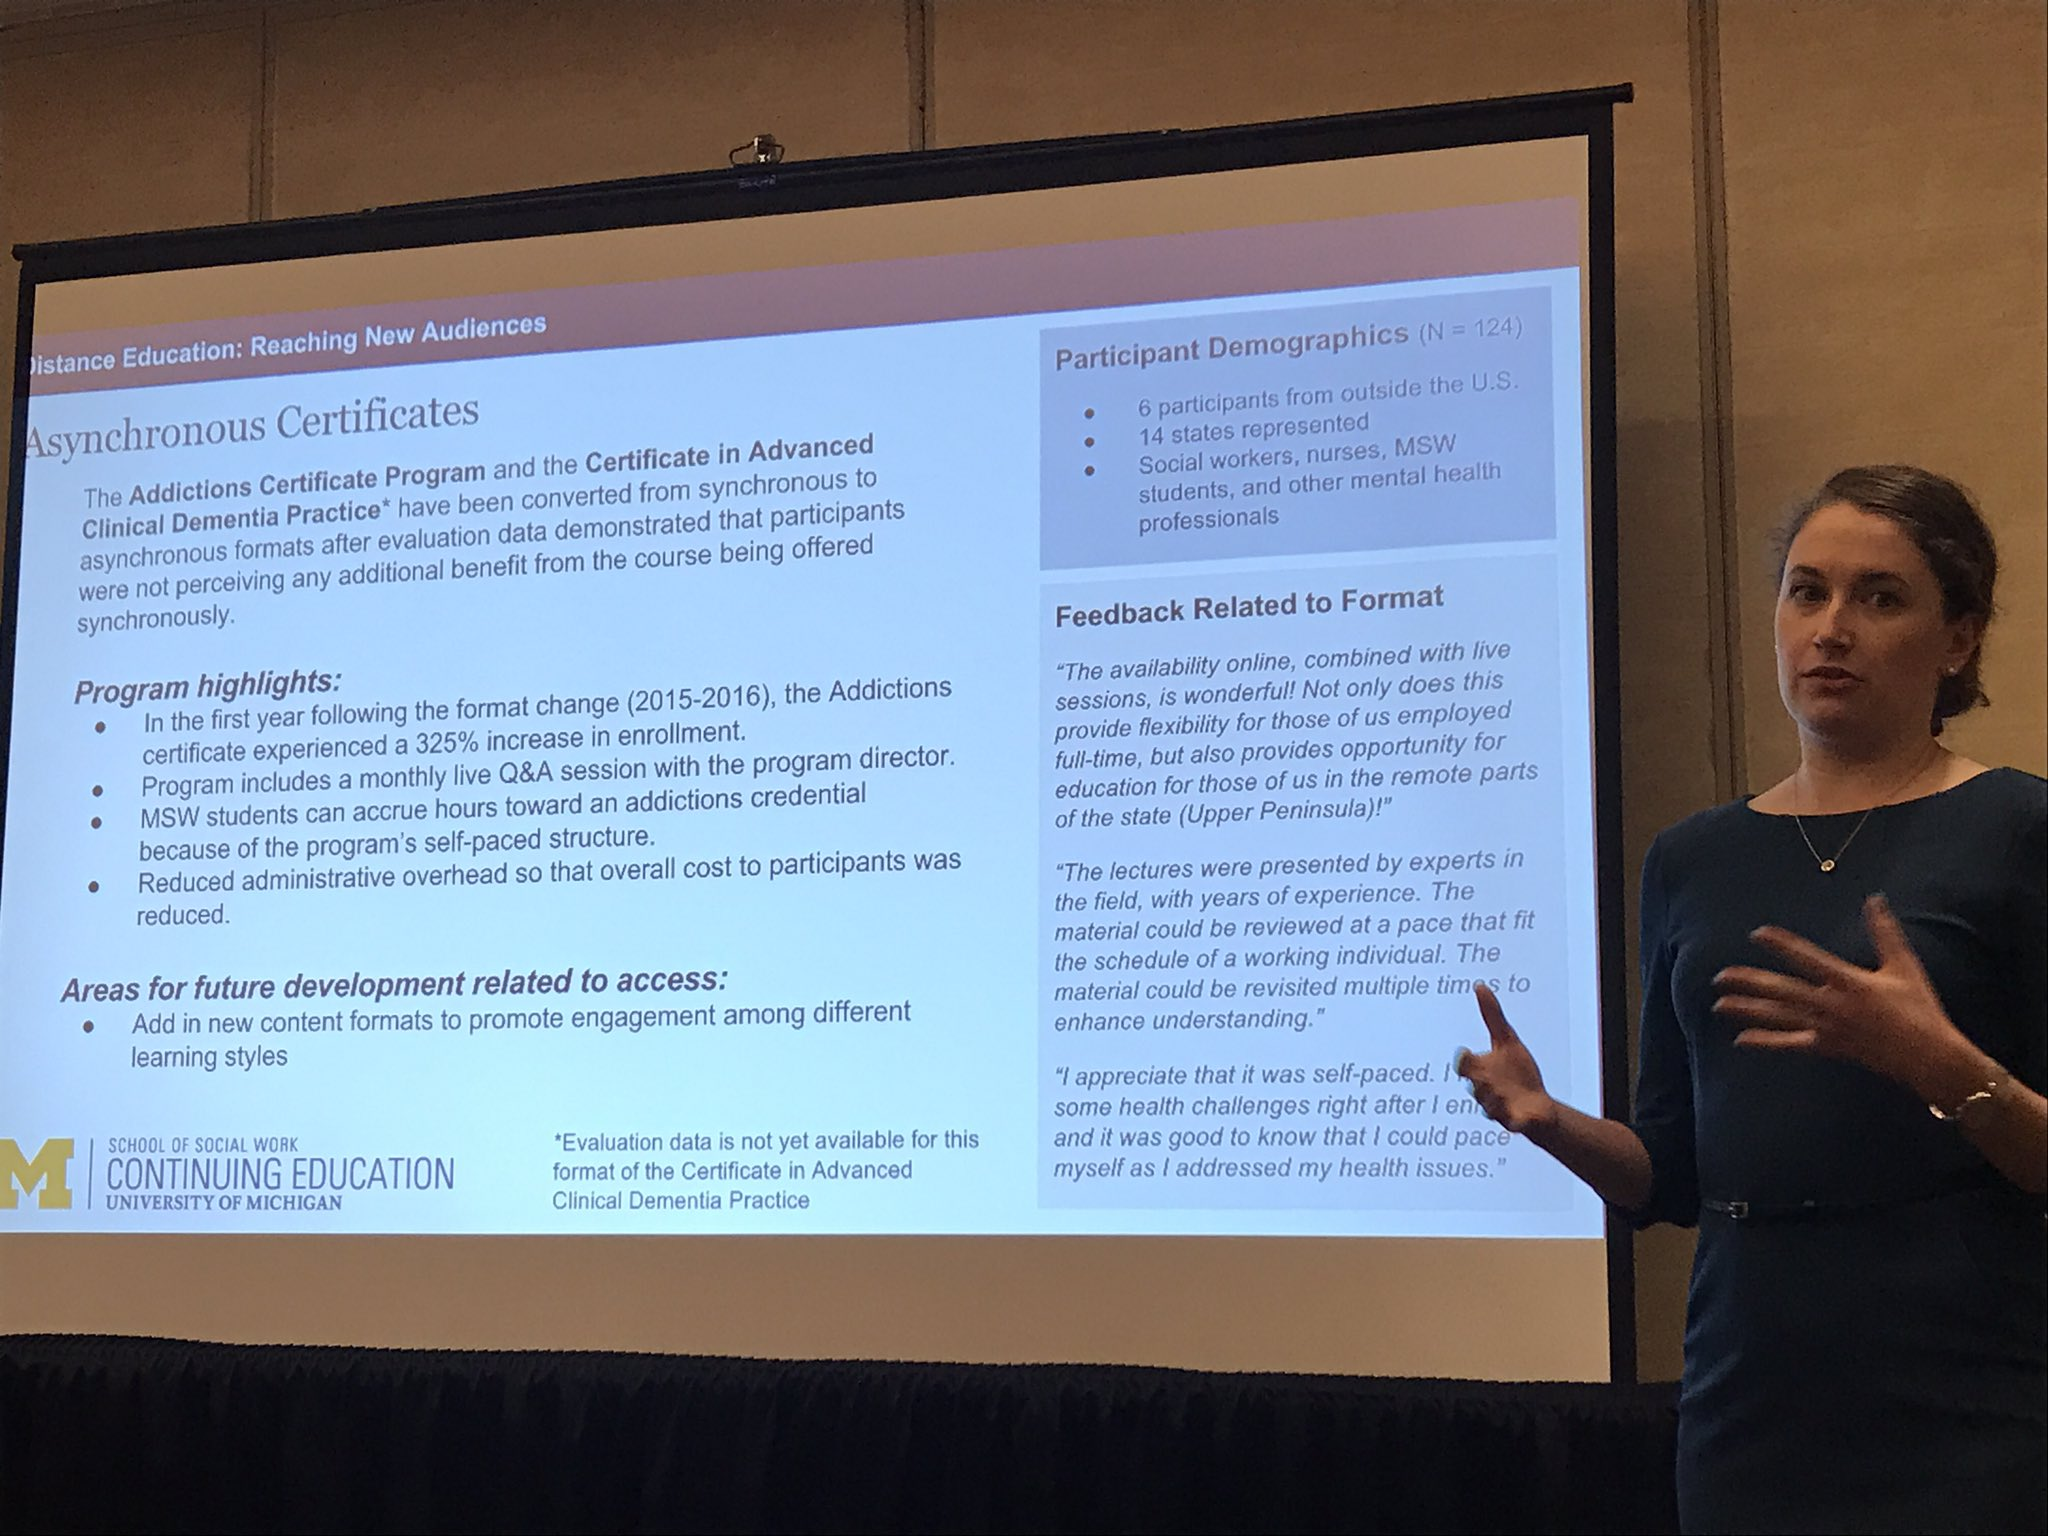 Alia Wesala: UMich SW uses Canvas & Bluejeans for continuing ed, runs certificates in-house w/o external partner #swde2017 https://t.co/KrTDwgbD0B